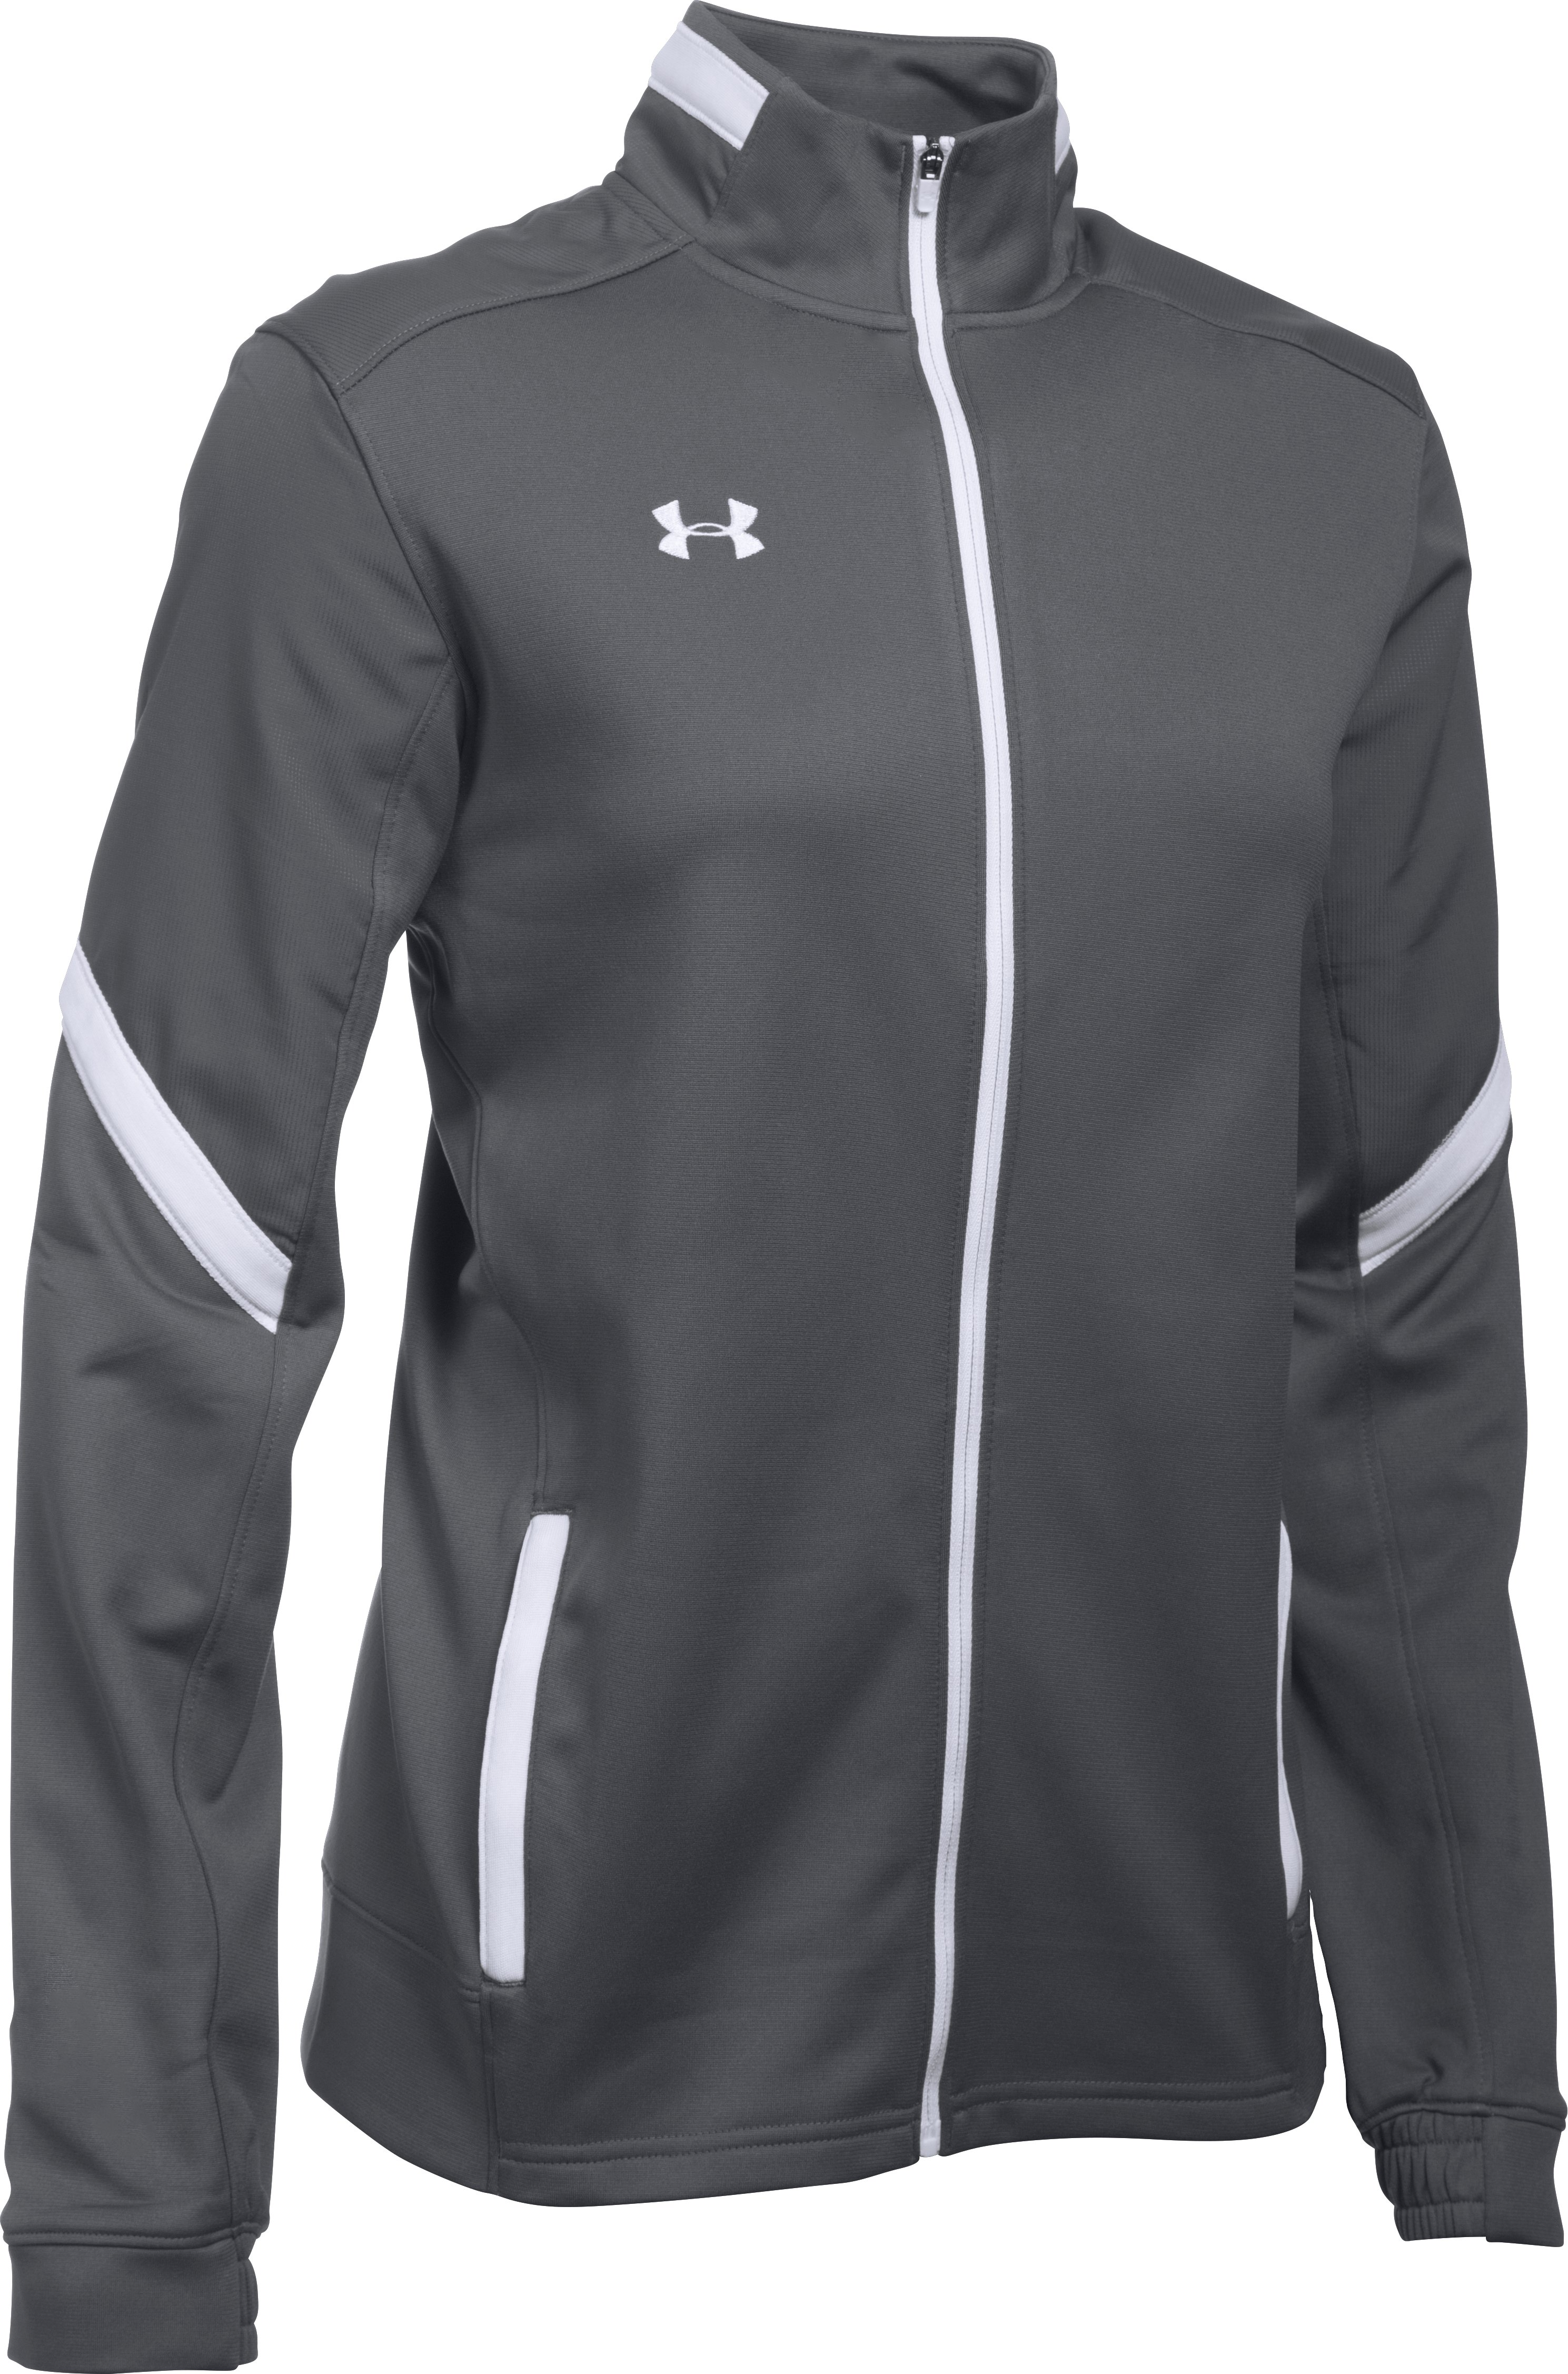 Women's UA Qualifier Knit Warm-Up Jacket, Graphite